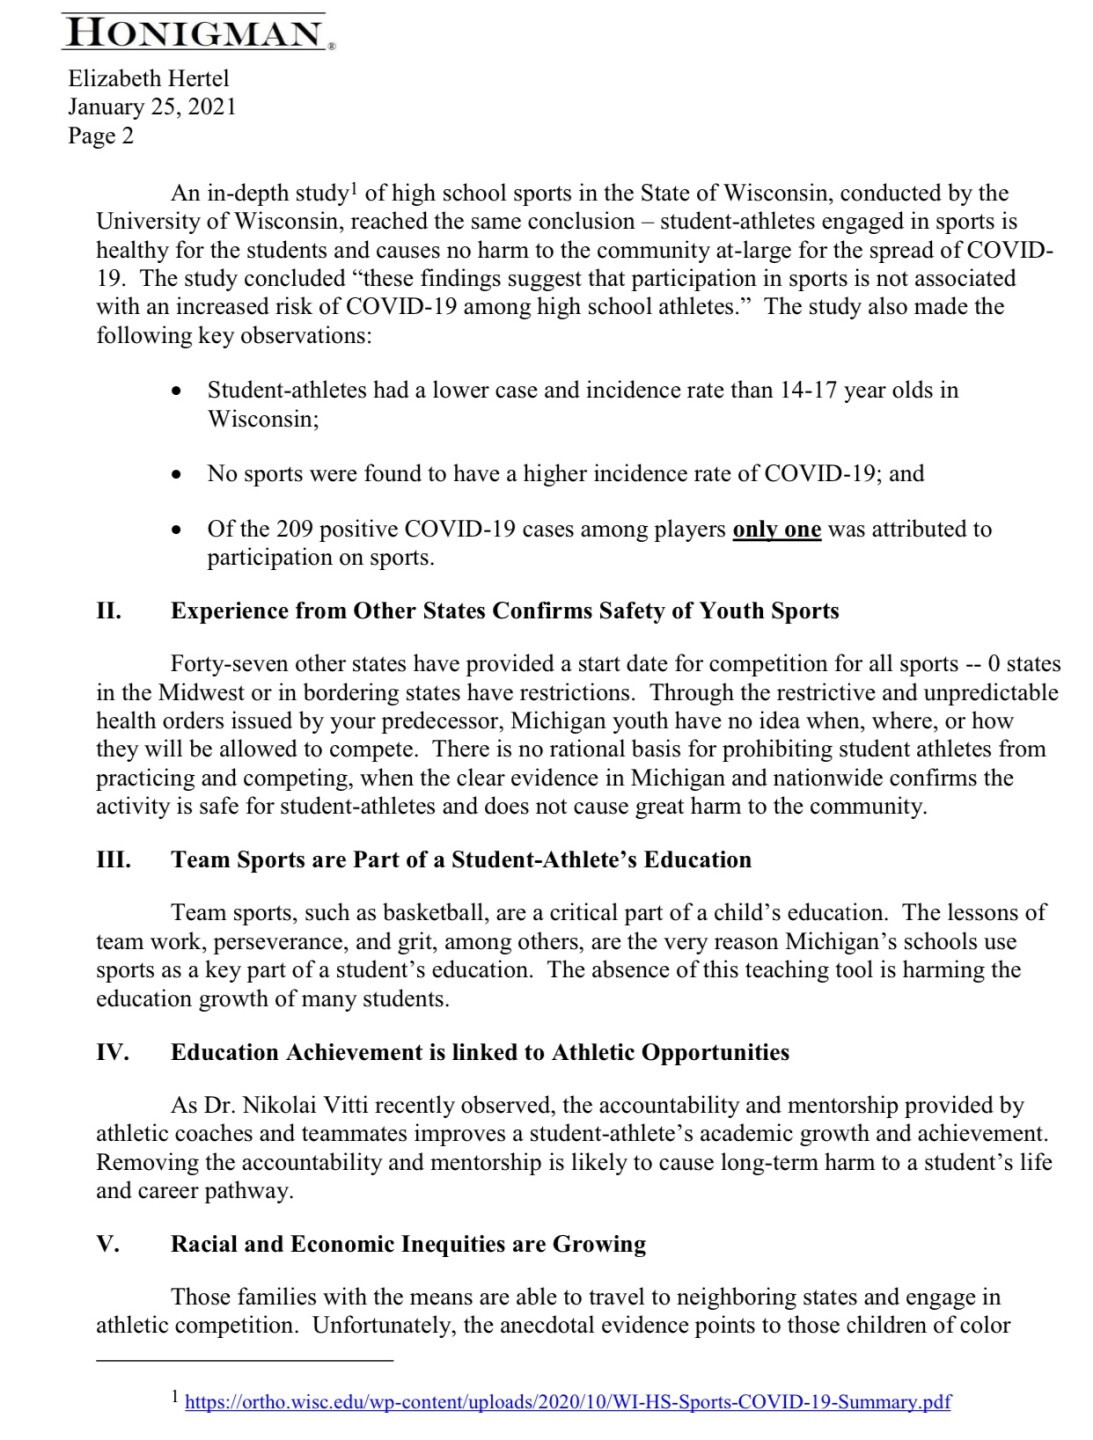 Page 2 of 'Let Them Play' lawsuit